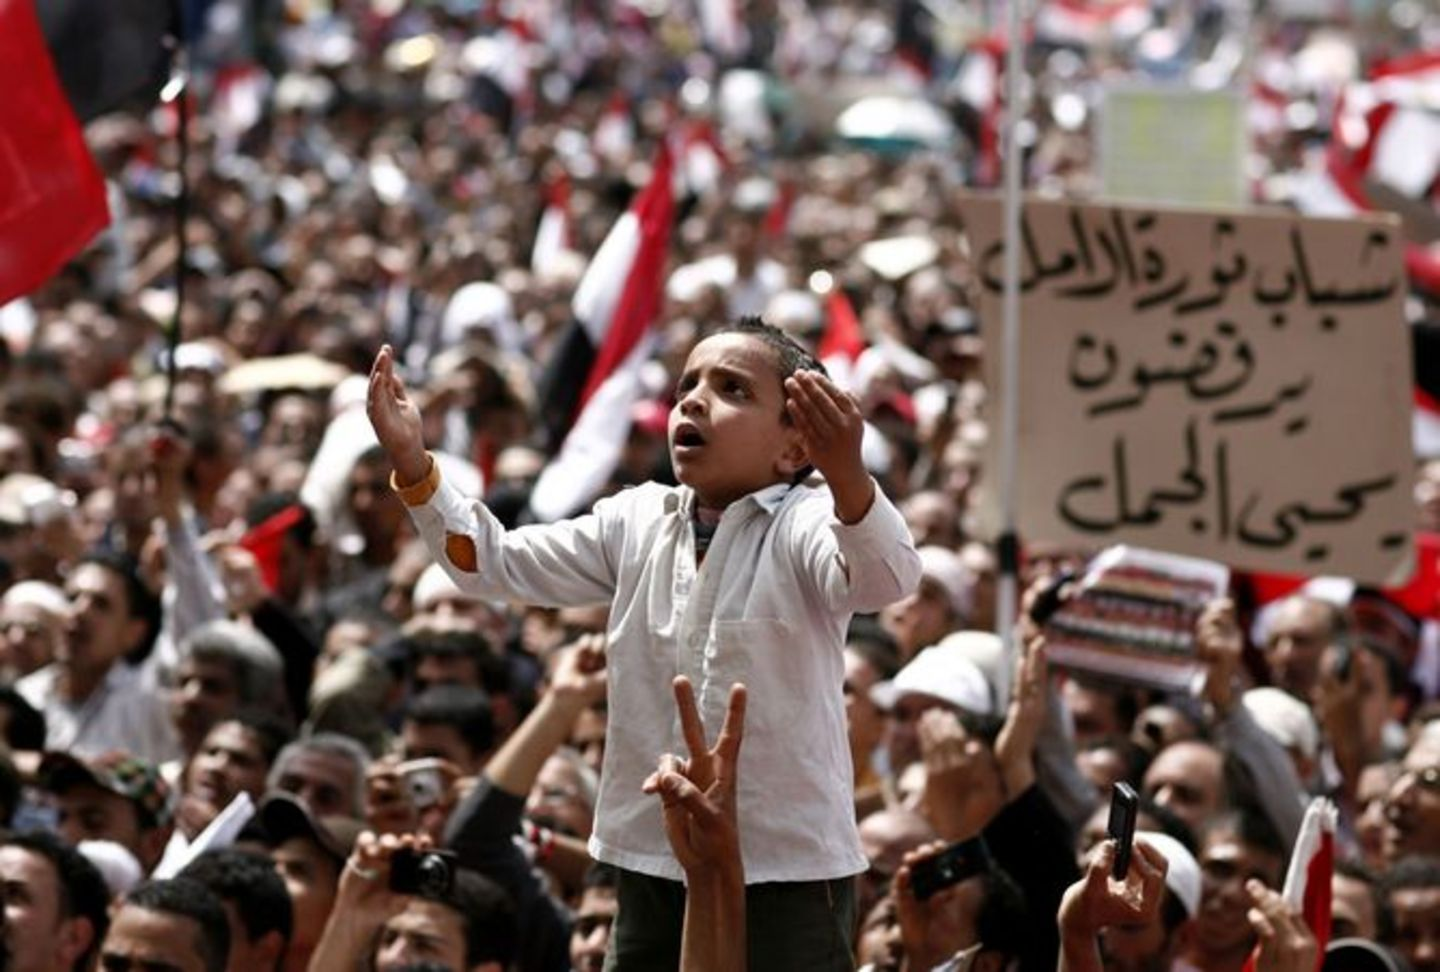 Middle East and Arab Spring: February 24th, 2014